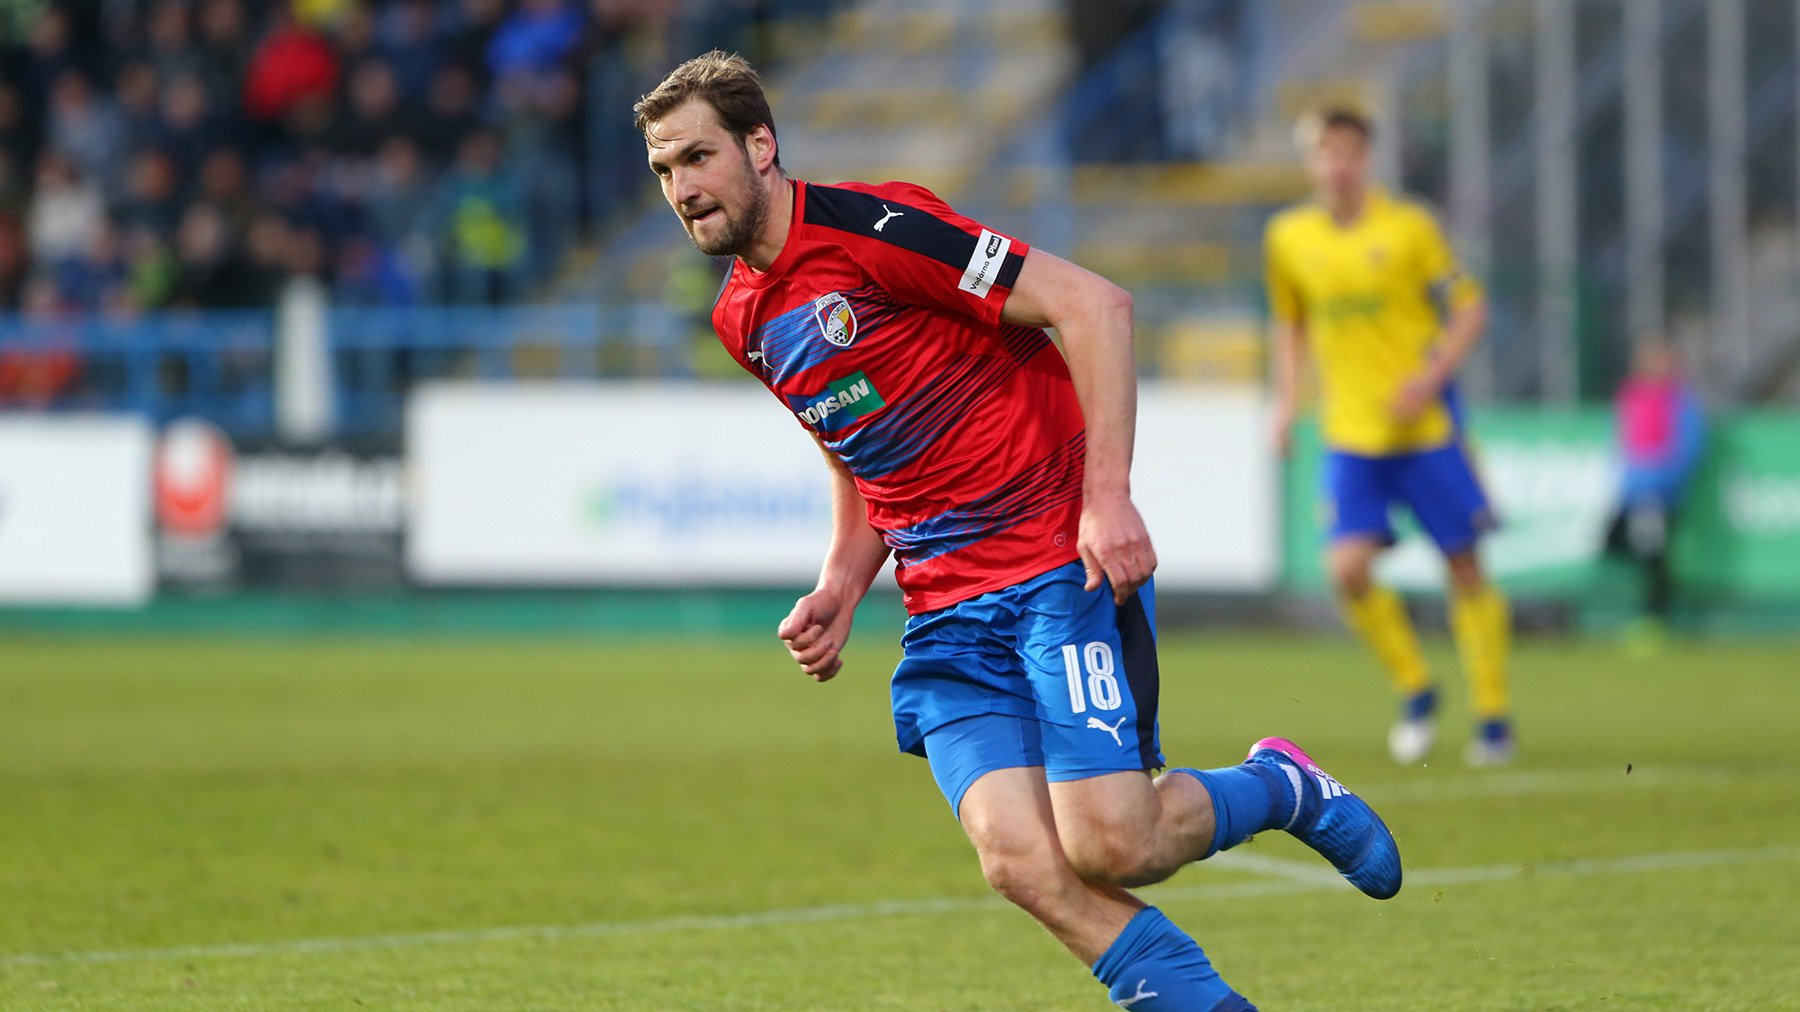 ​1 point means a loss for us, Viktorians agree